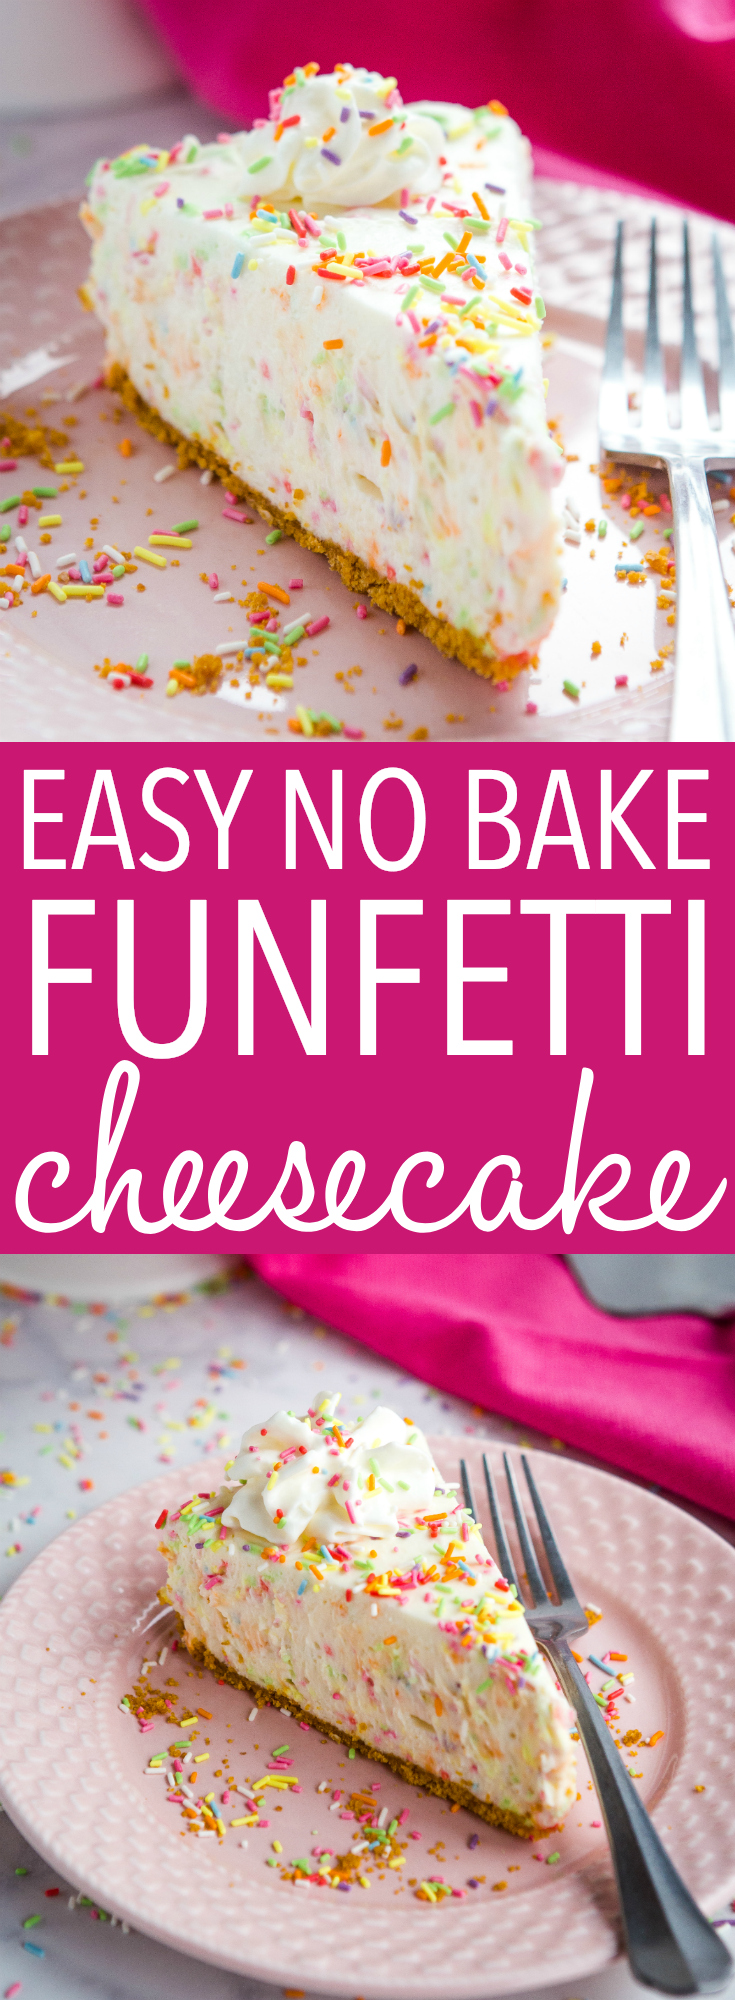 This Easy No Bake Funfetti Cheesecake is the perfect birthday cake-inspired cheesecake that's so easy to make, no baking required! Recipe from thebusybaker.ca! #cheesecake #funfetti #birthdaycake #sprinkles #chocolate #cake #dessert #nobake #baking via @busybakerblog